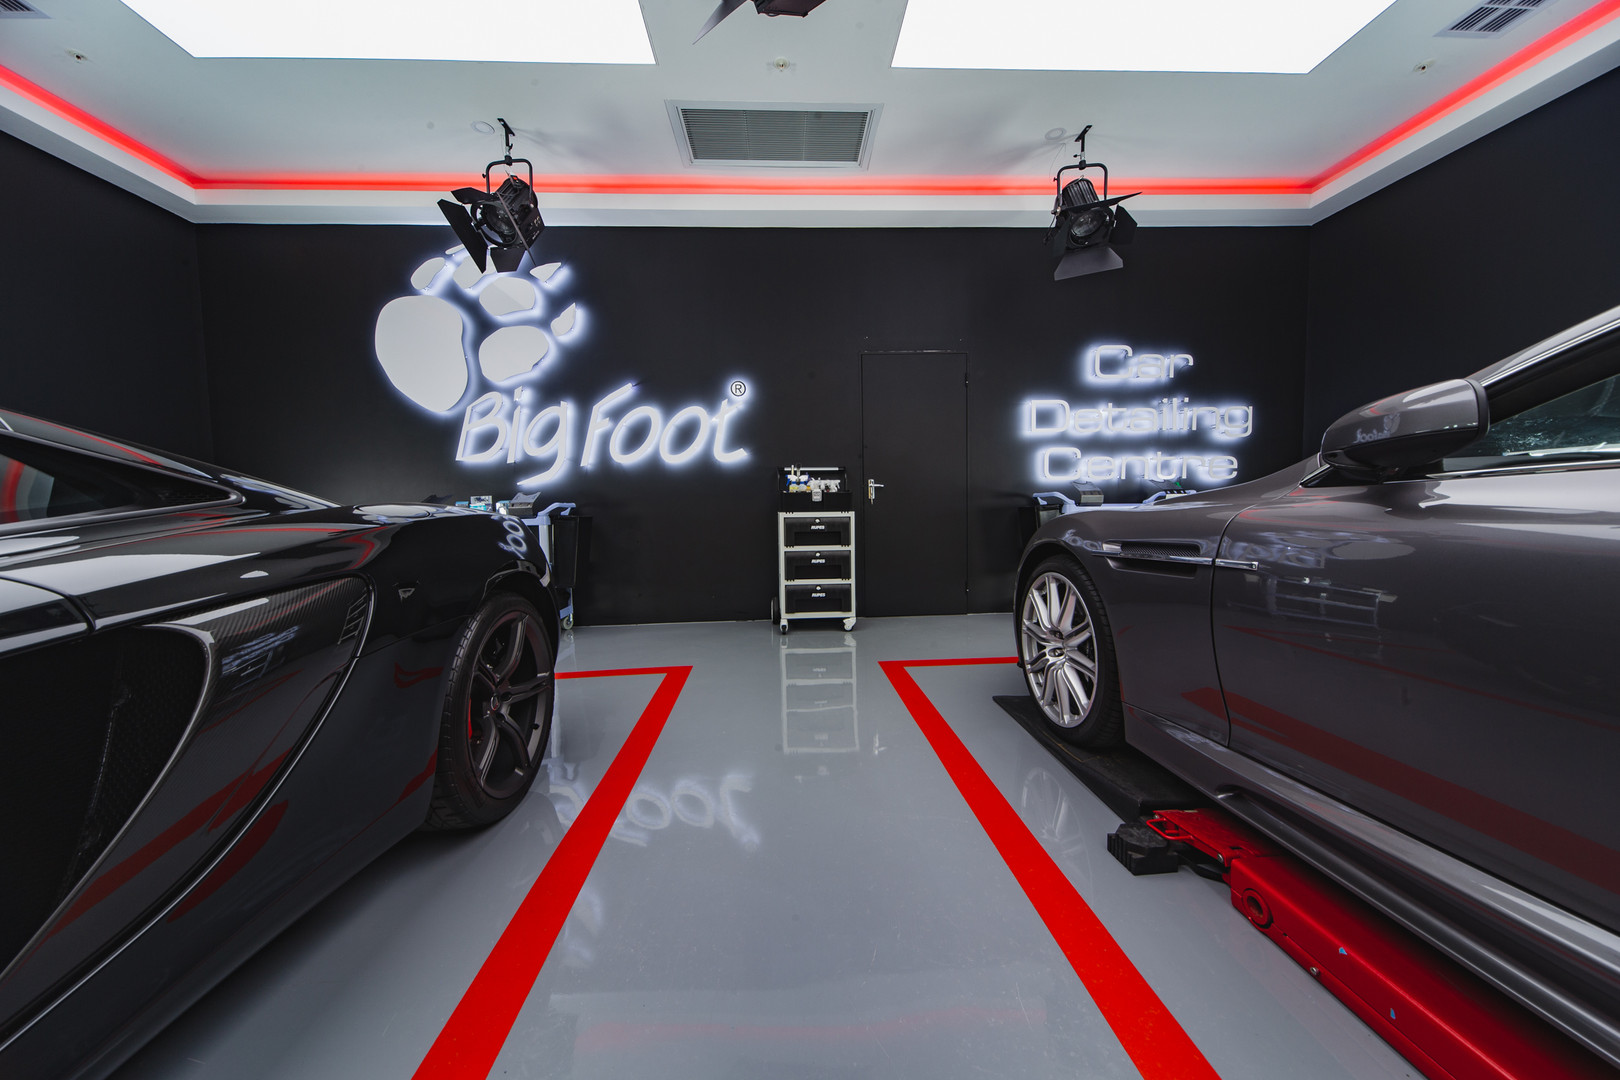 Bigfoot Detailing Centre